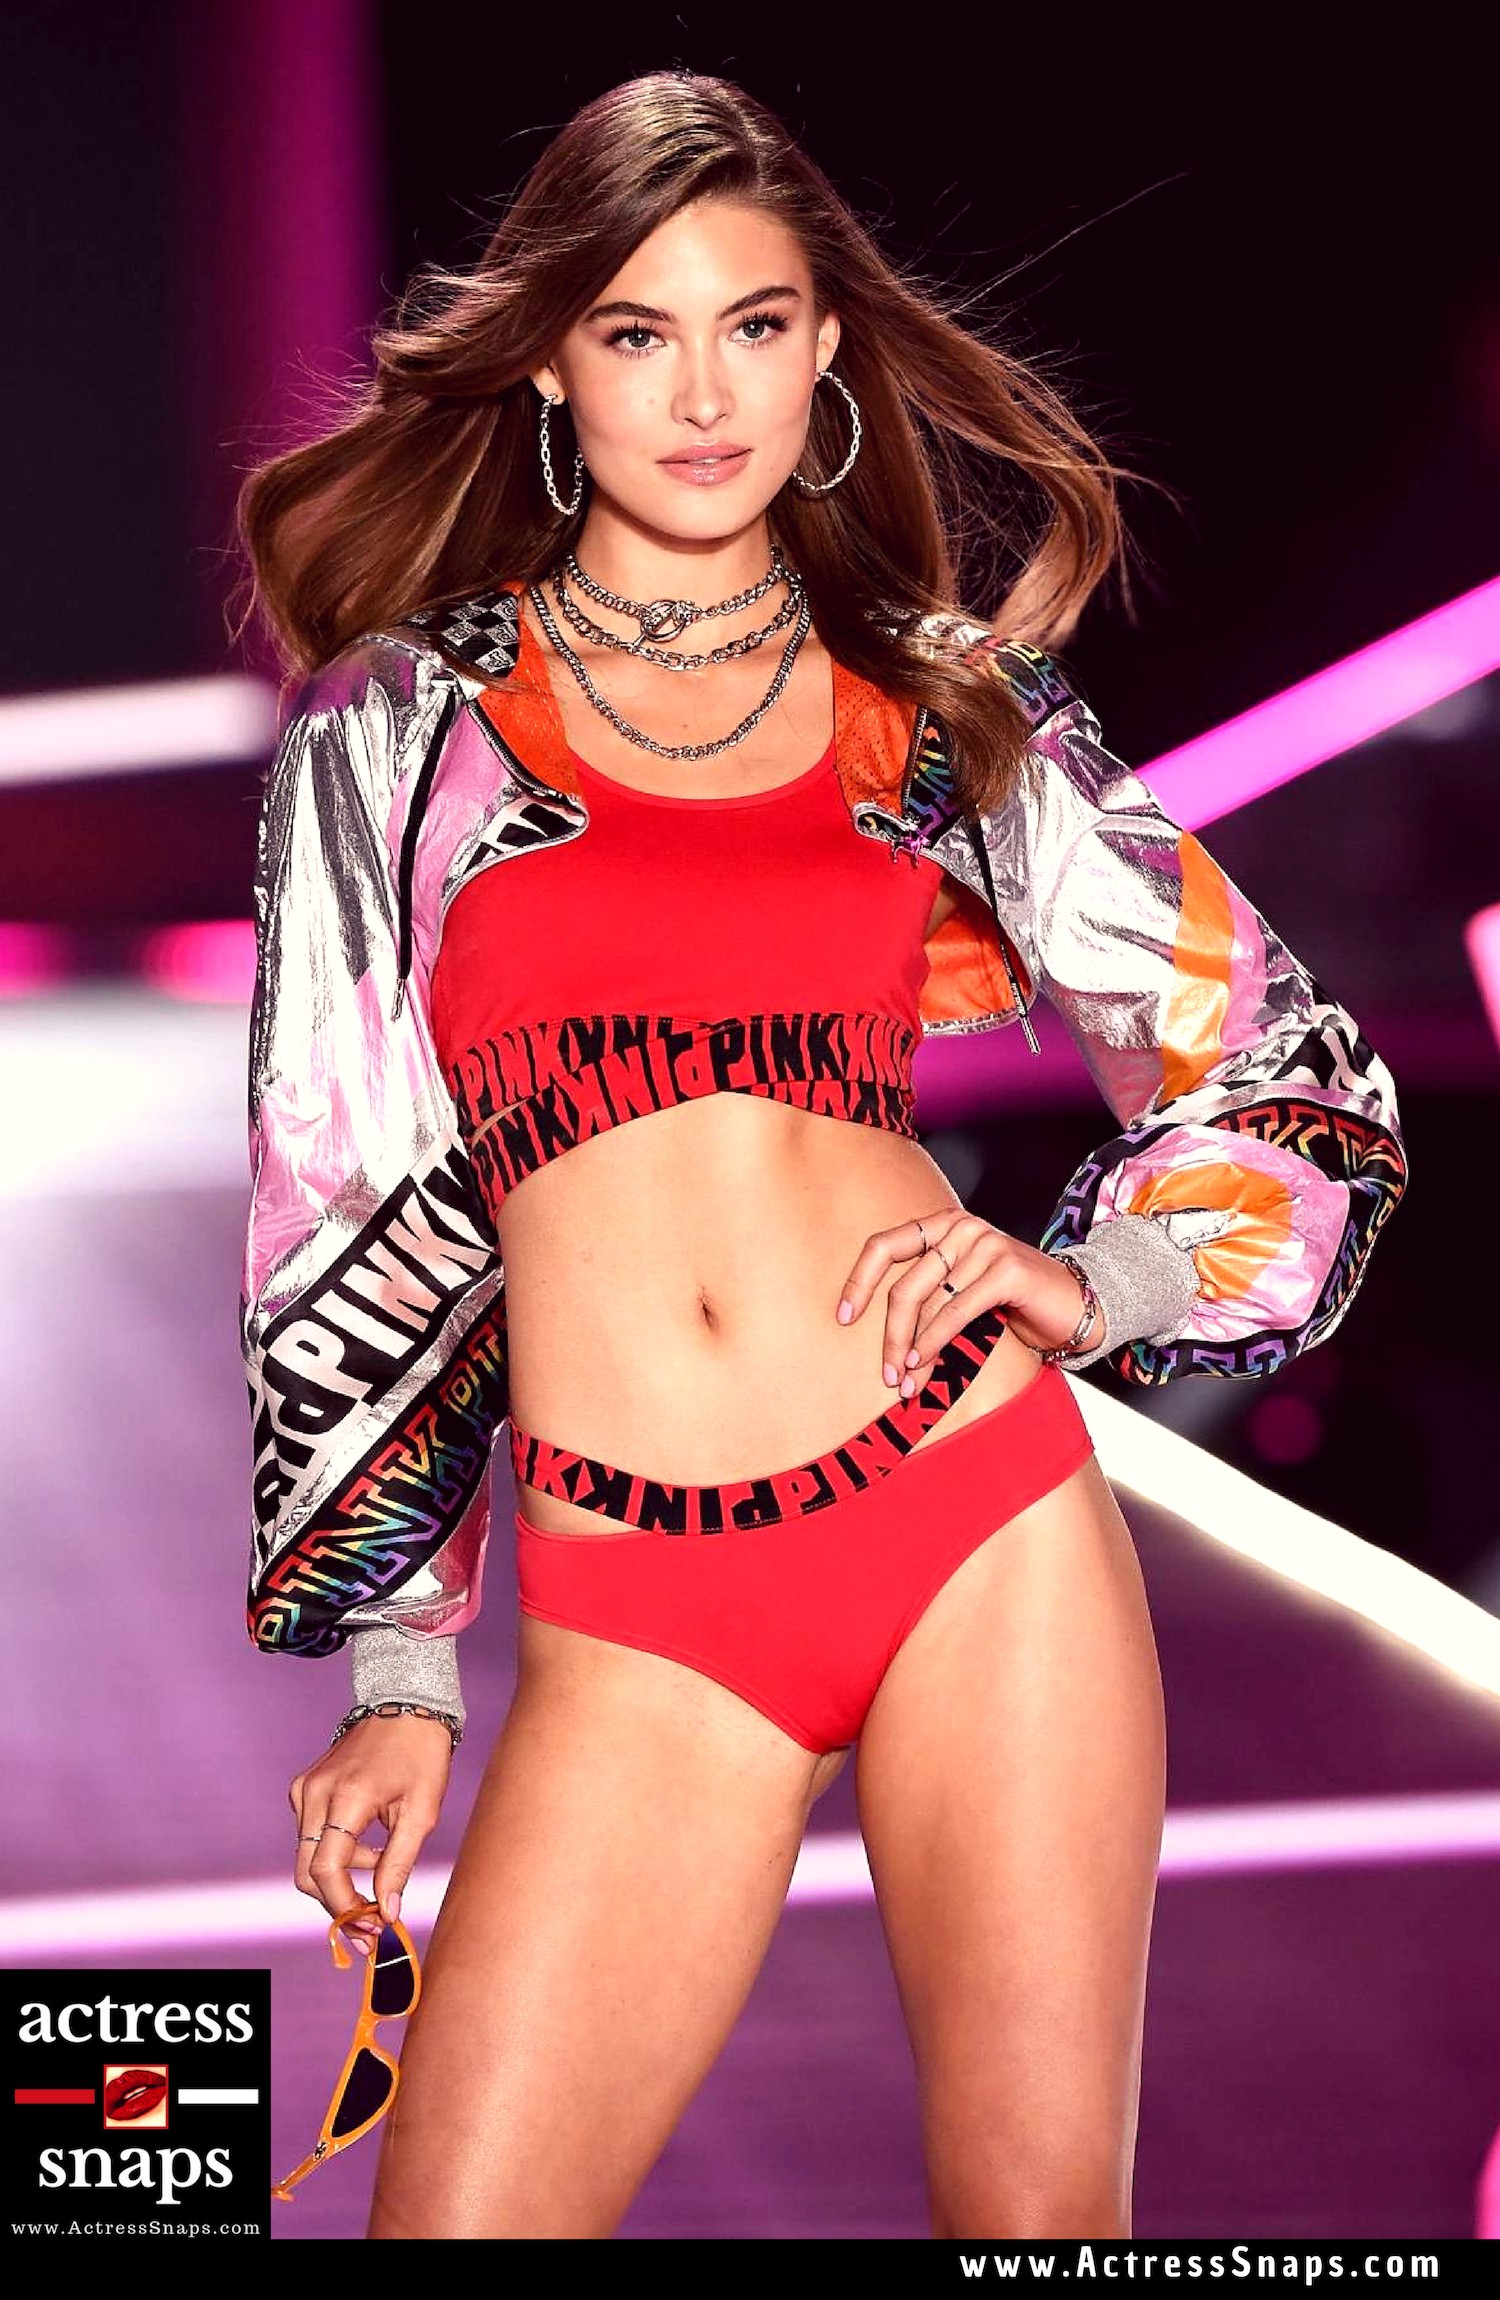 Super Model Grace Elizabeth at Victoria's Secret Show